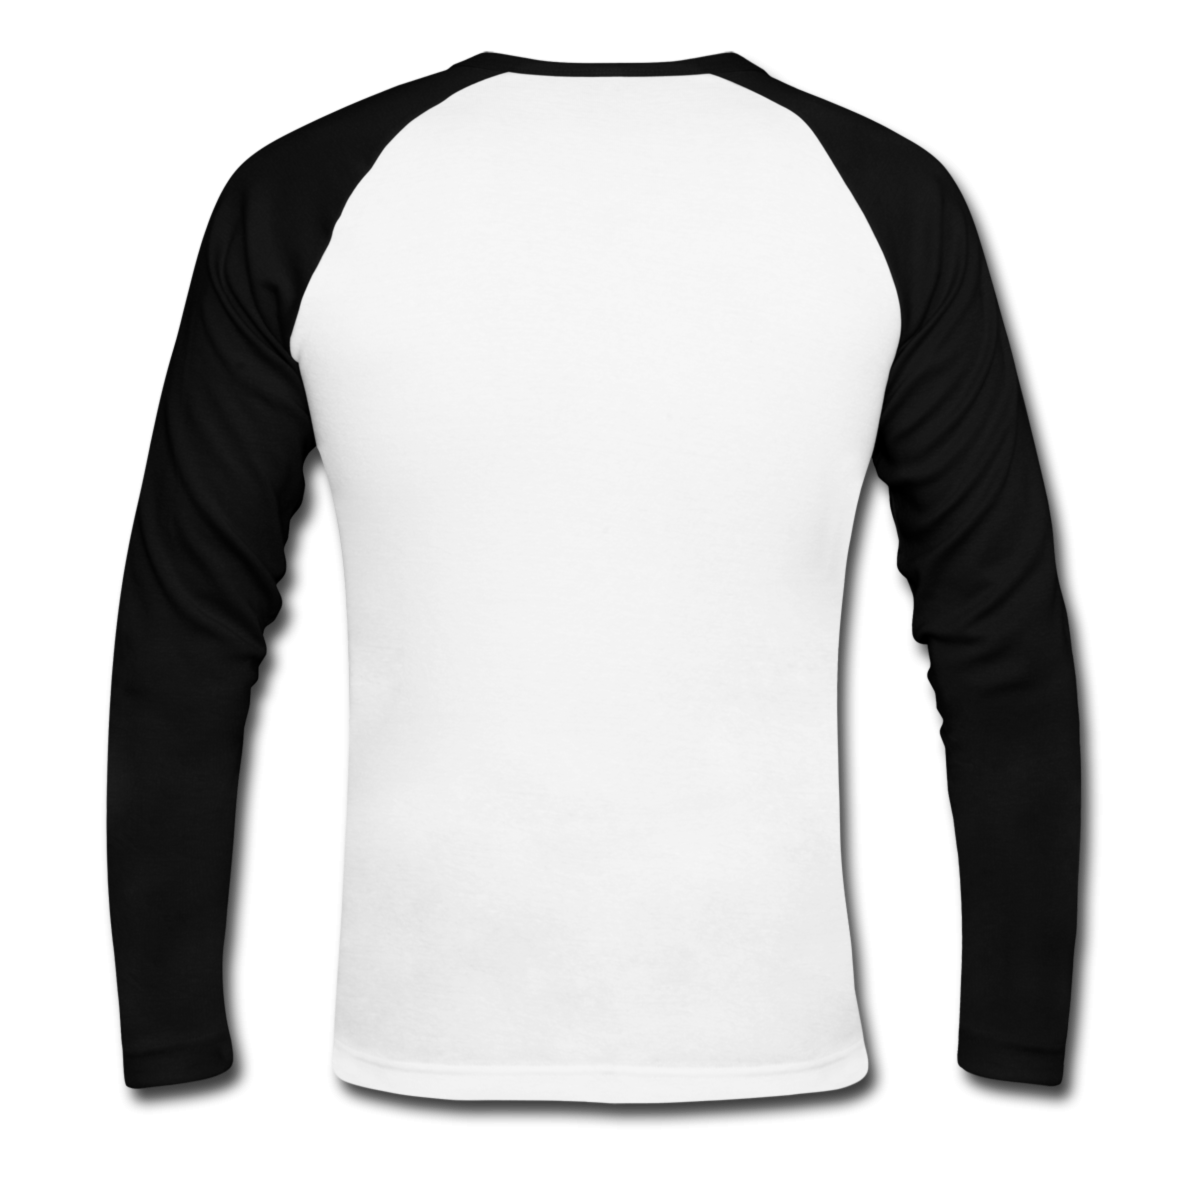 Free Longsleeve Shirt Cliparts, Download Free Clip Art, Free.